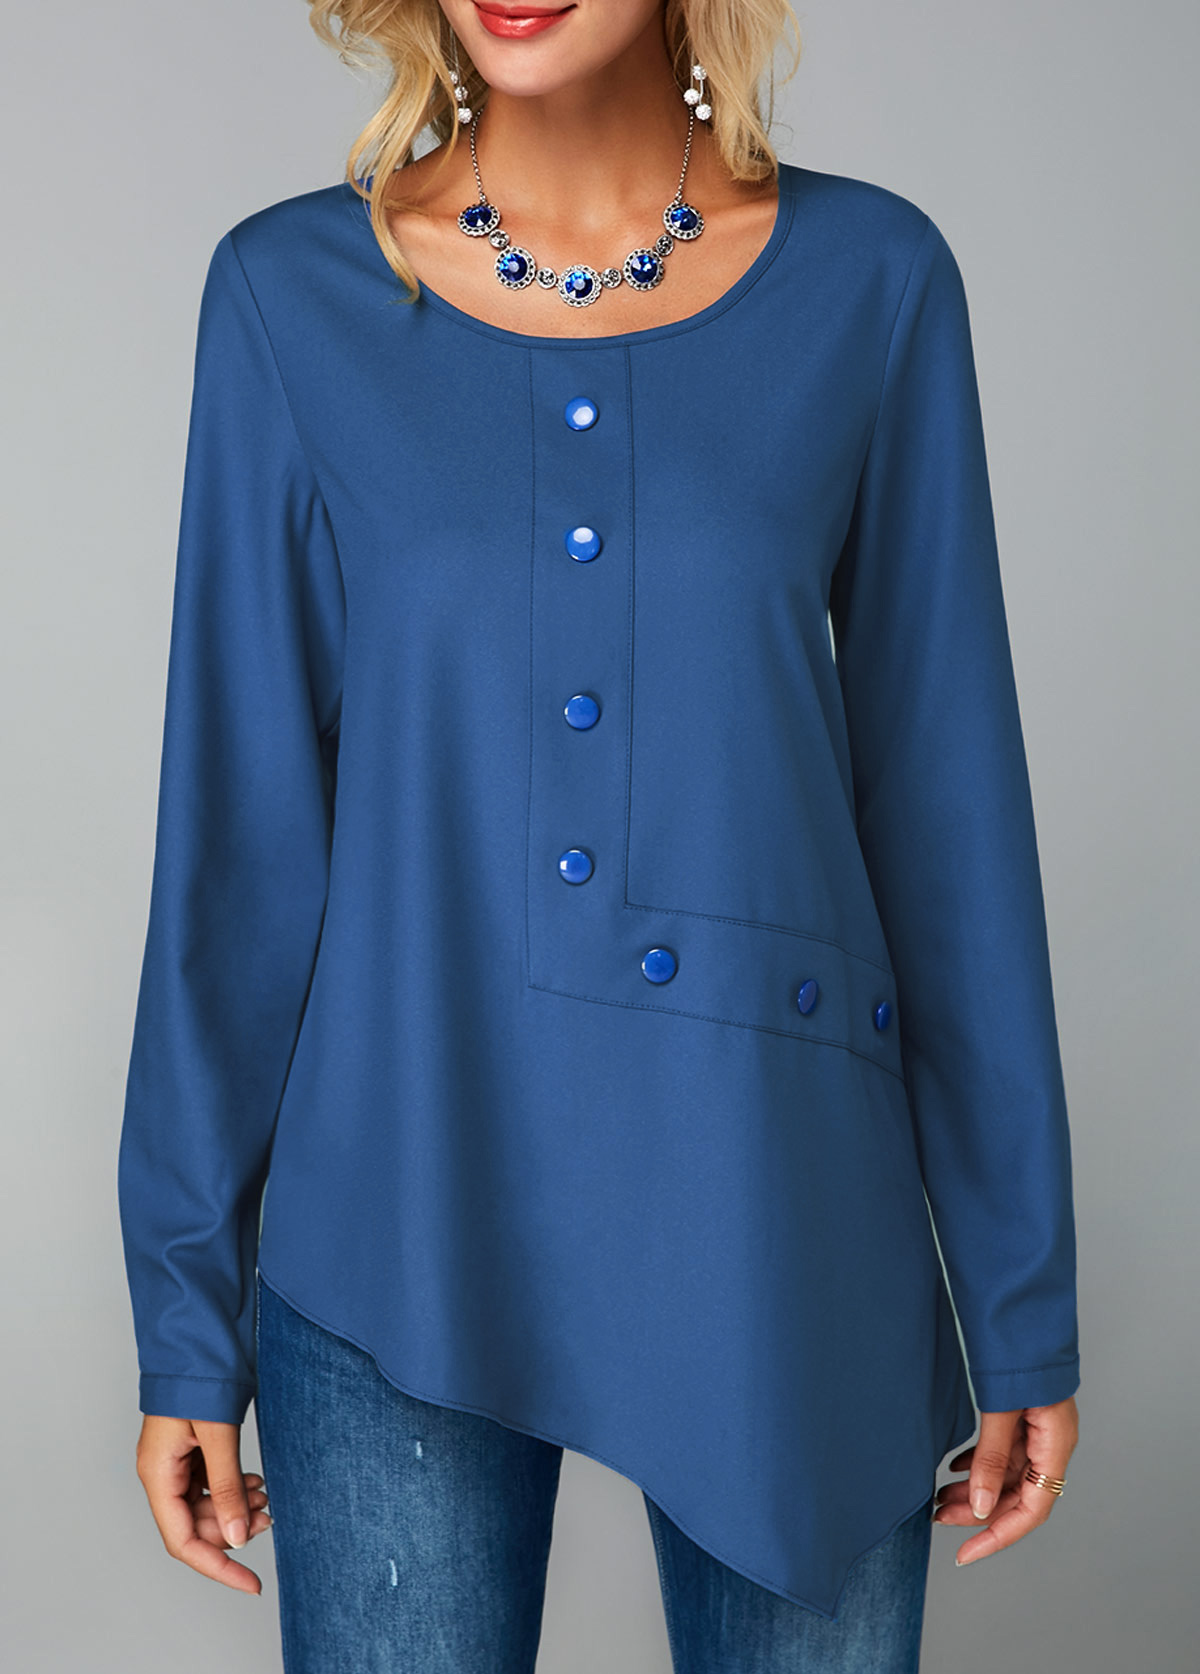 ROTITA Royal Blue Keyhole Back Button Decorated Blouse